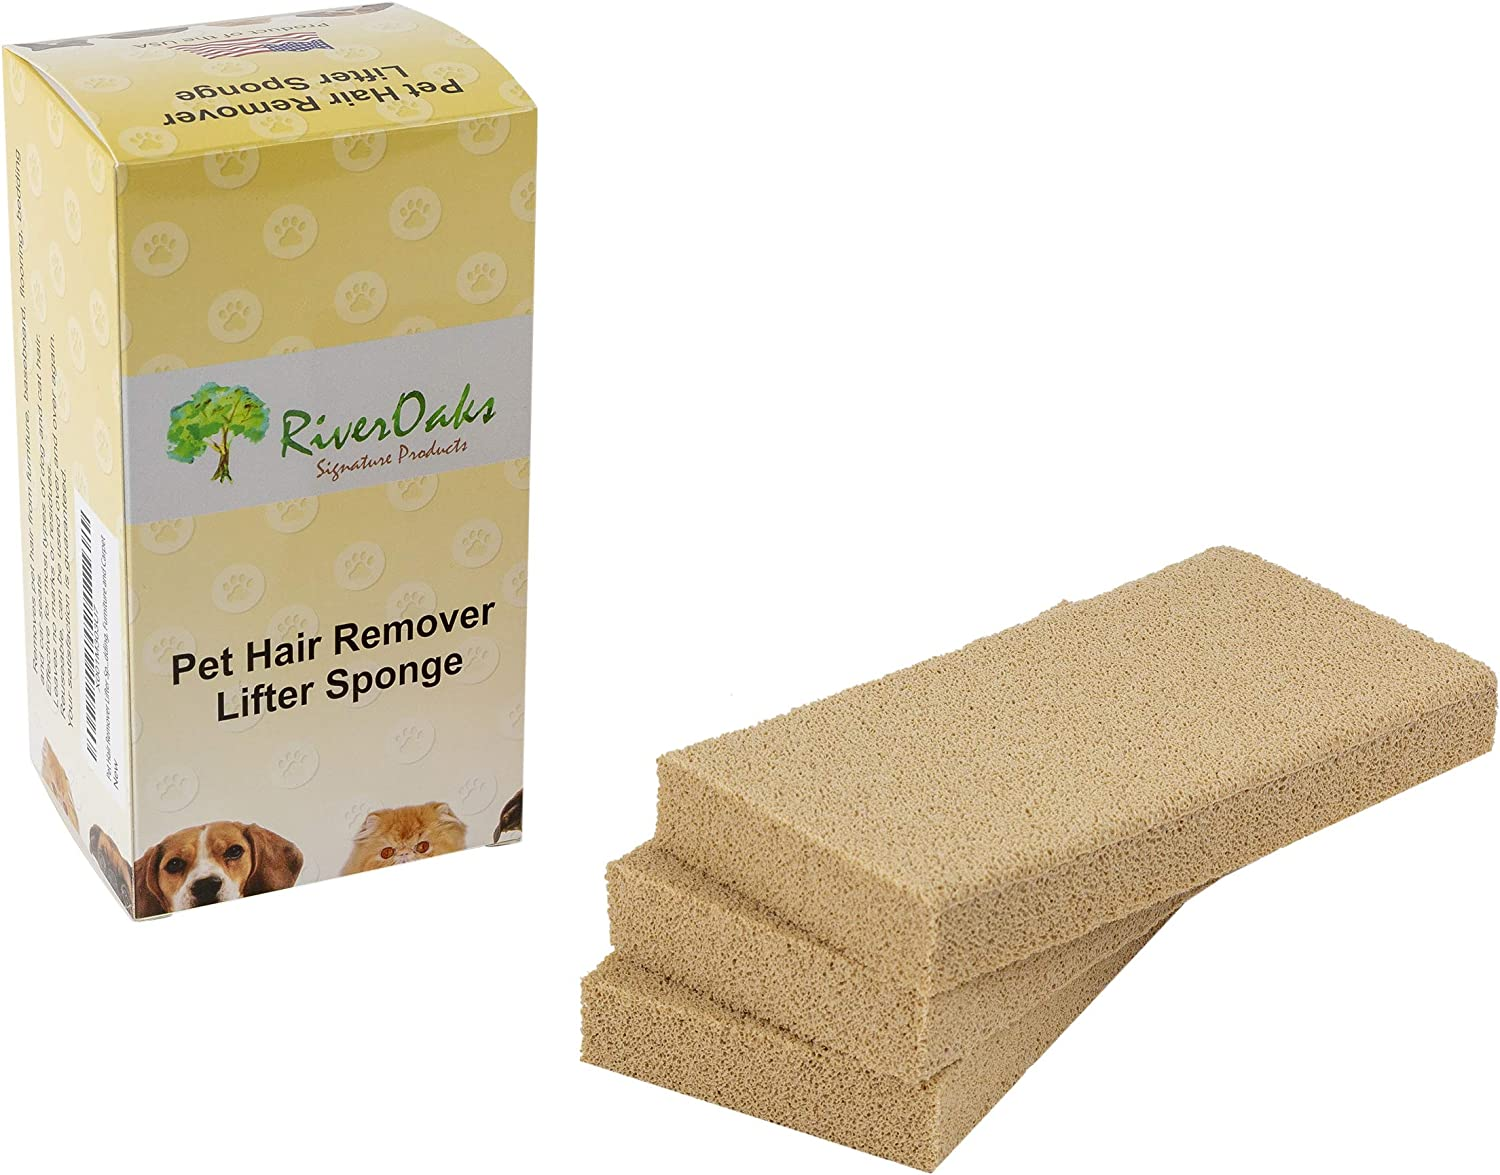 Pet Hair Remover Lifter Sponge - (3-Pack) Removes Cat Dog Hair from Bedding, Furniture Carpet